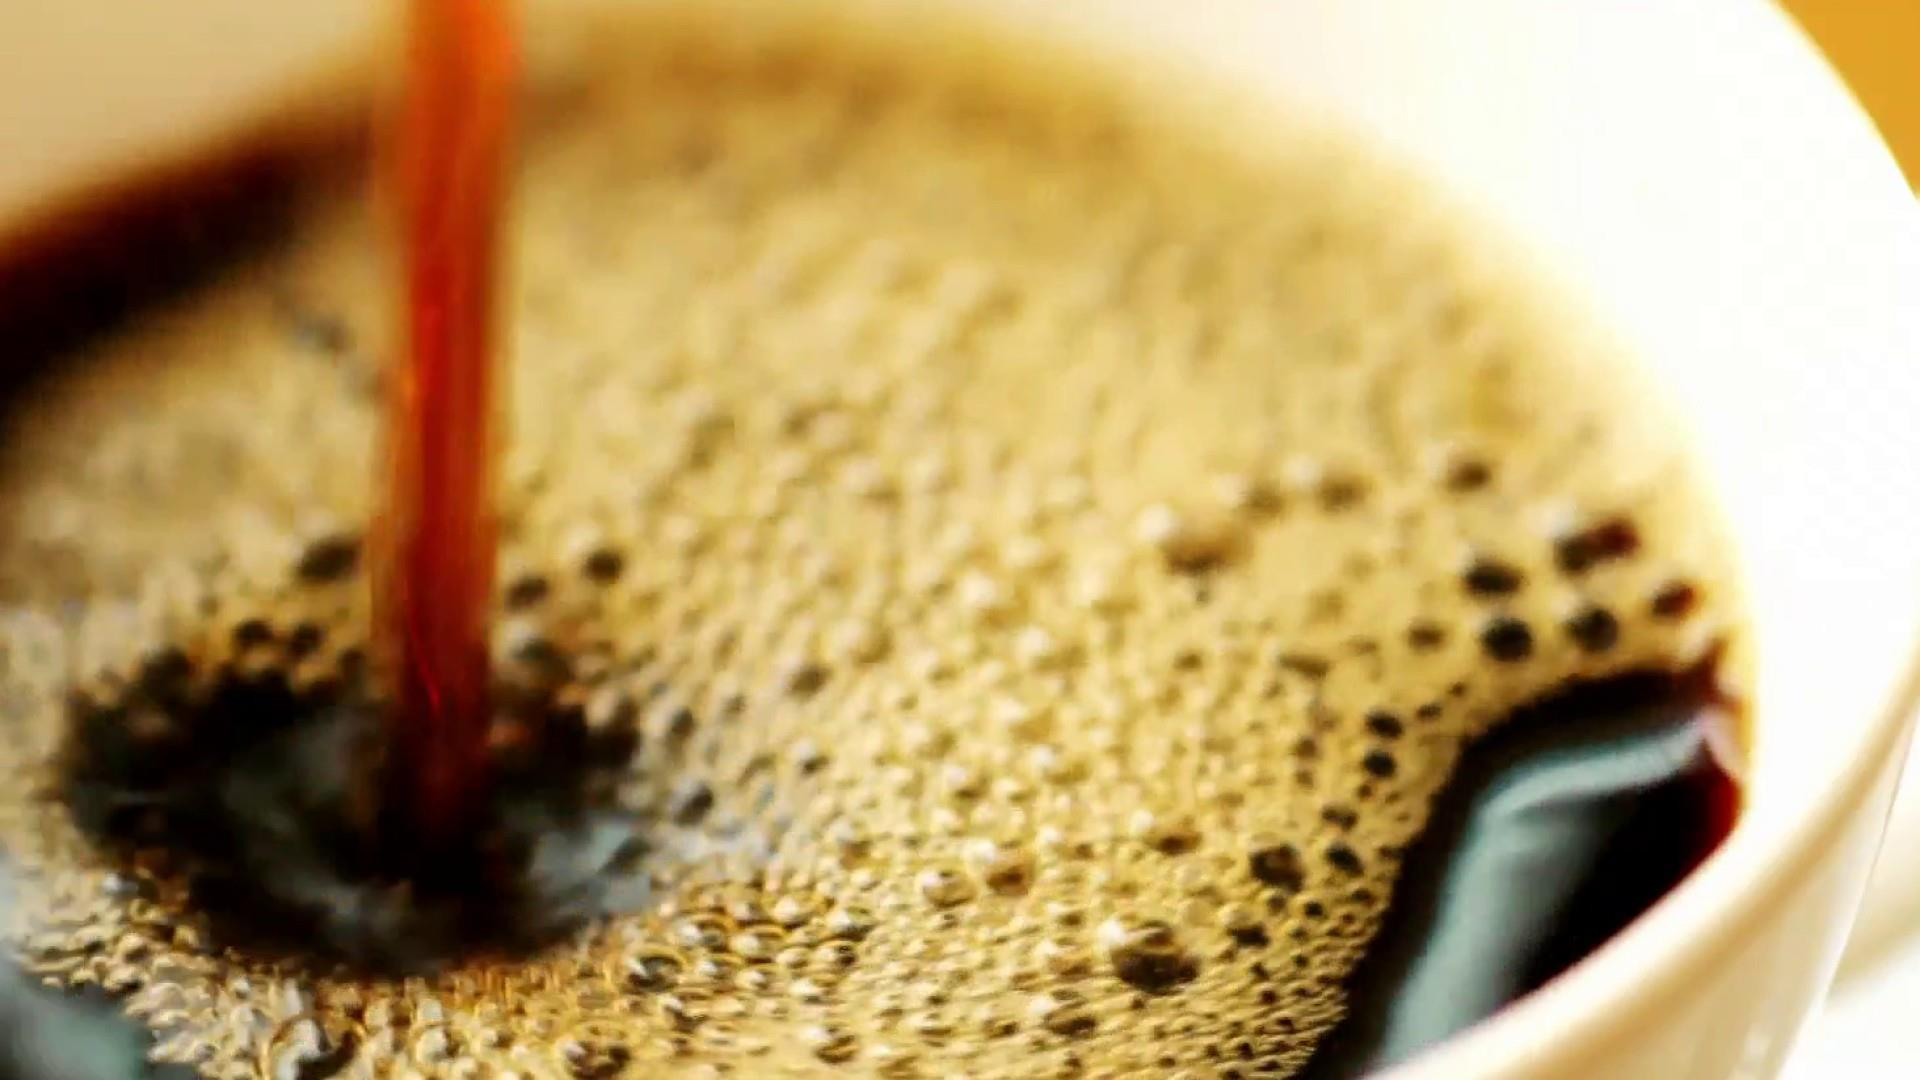 An extra cup of coffee could up the odds of a migraine